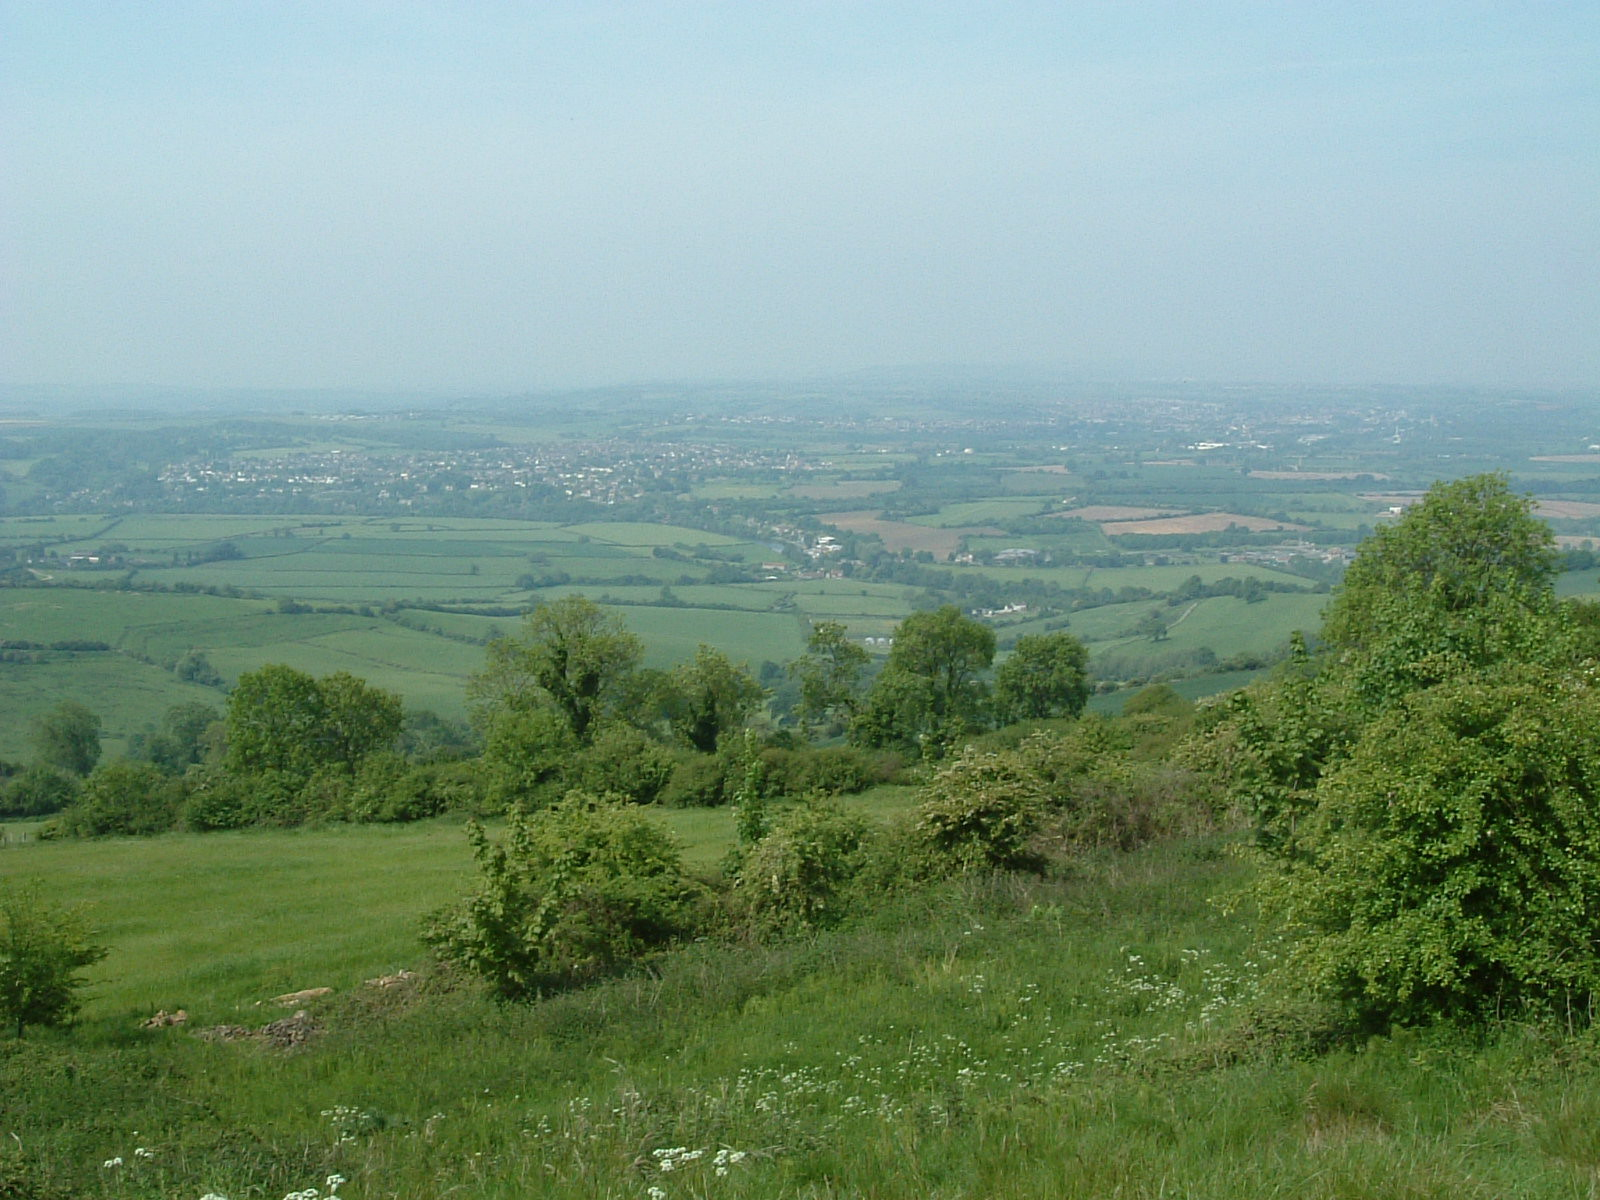 The view west from the Cotswold Way, looking towards Bristol